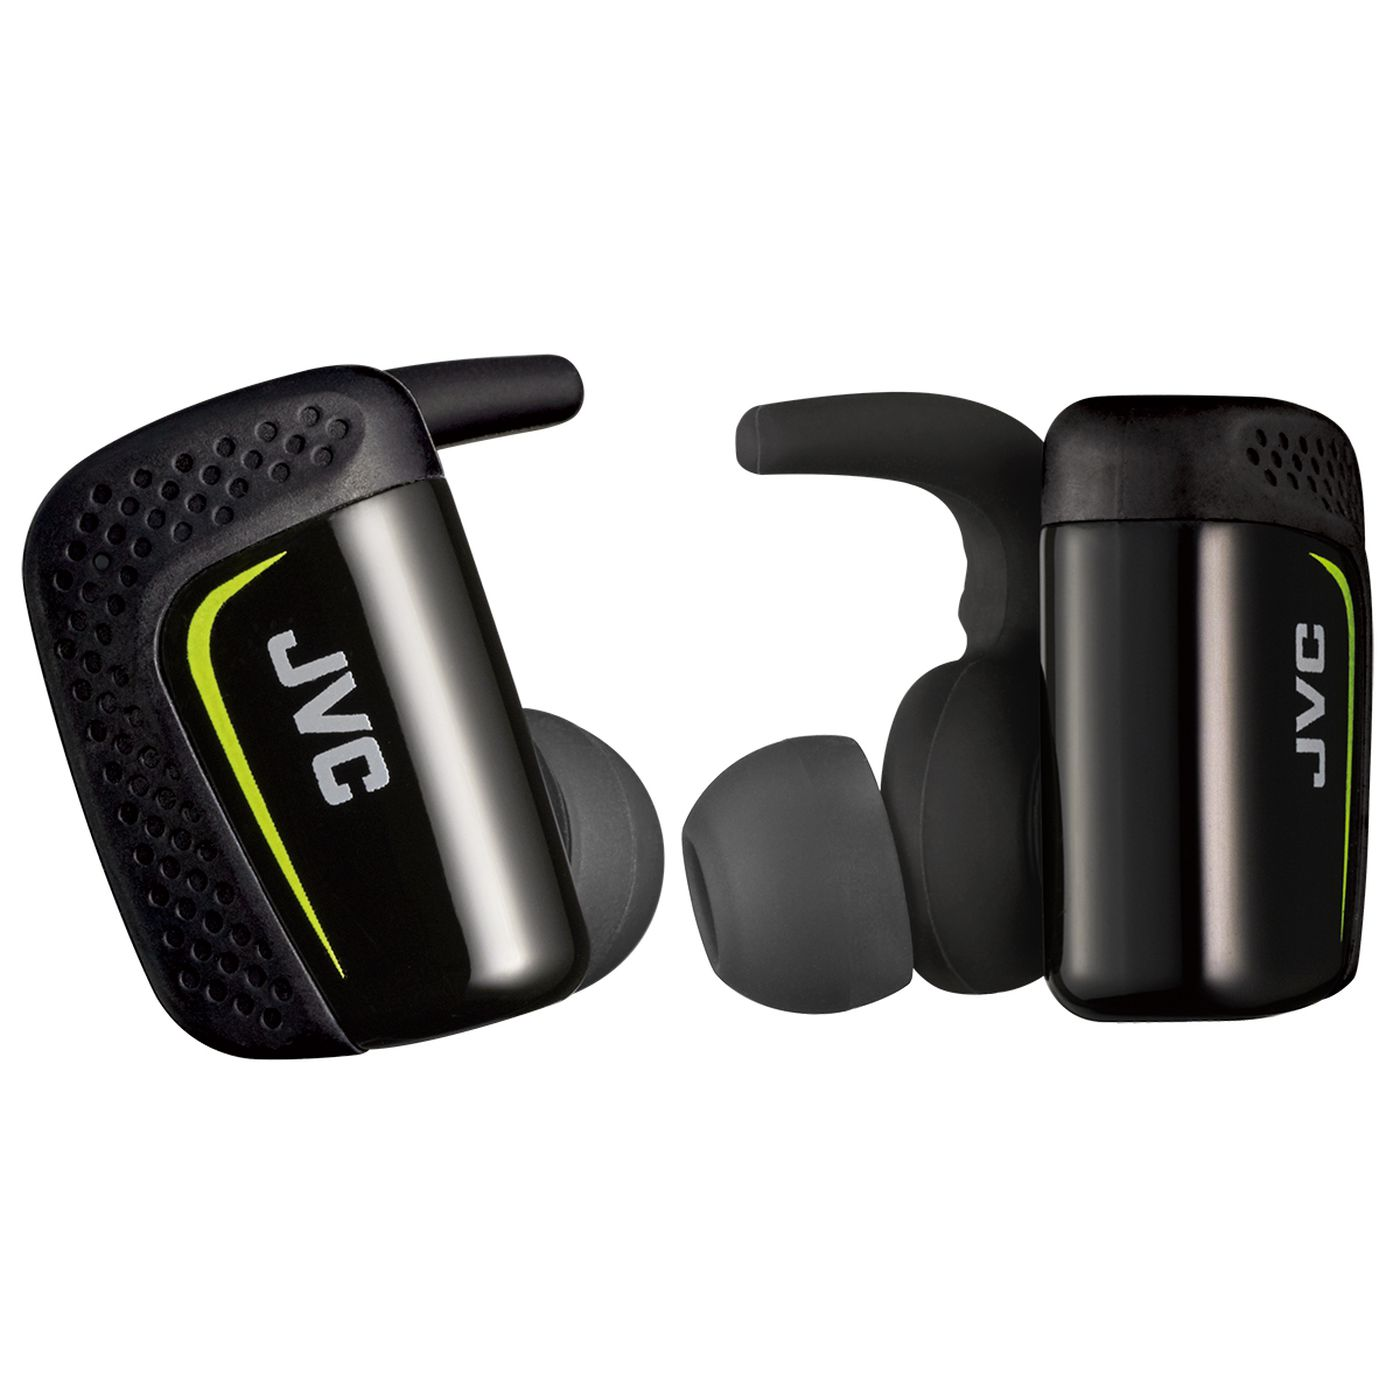 72e6cbee89d JVC releases more wireless headphones for different occasions - The ...